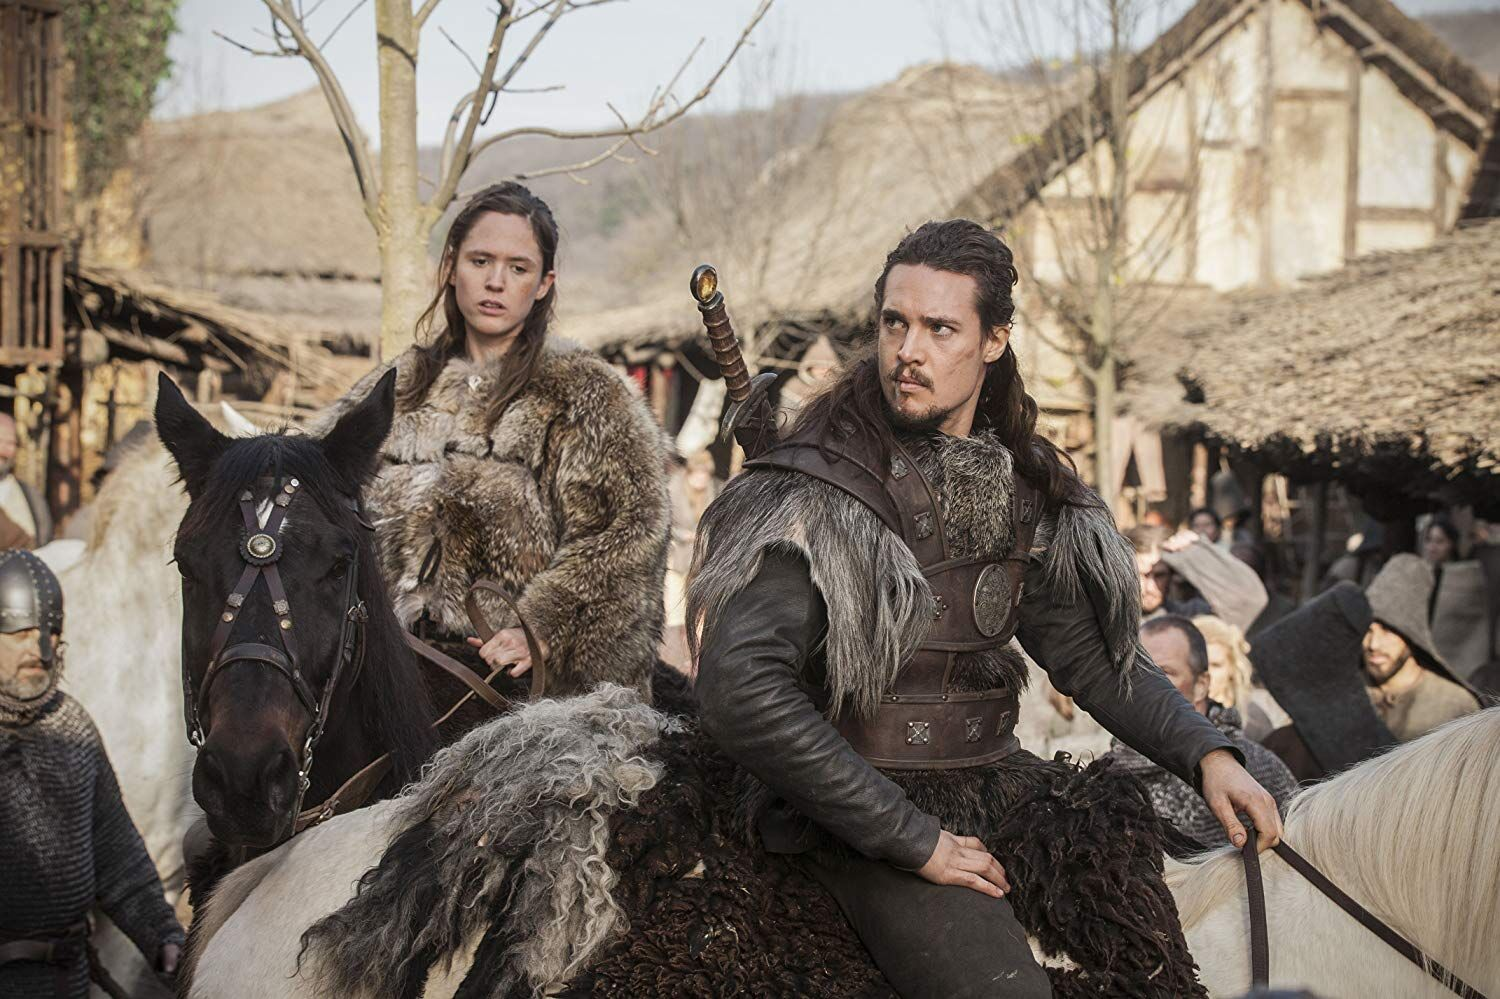 Horses and severed heads: Behind the scenes of The Last Kingdom season 4